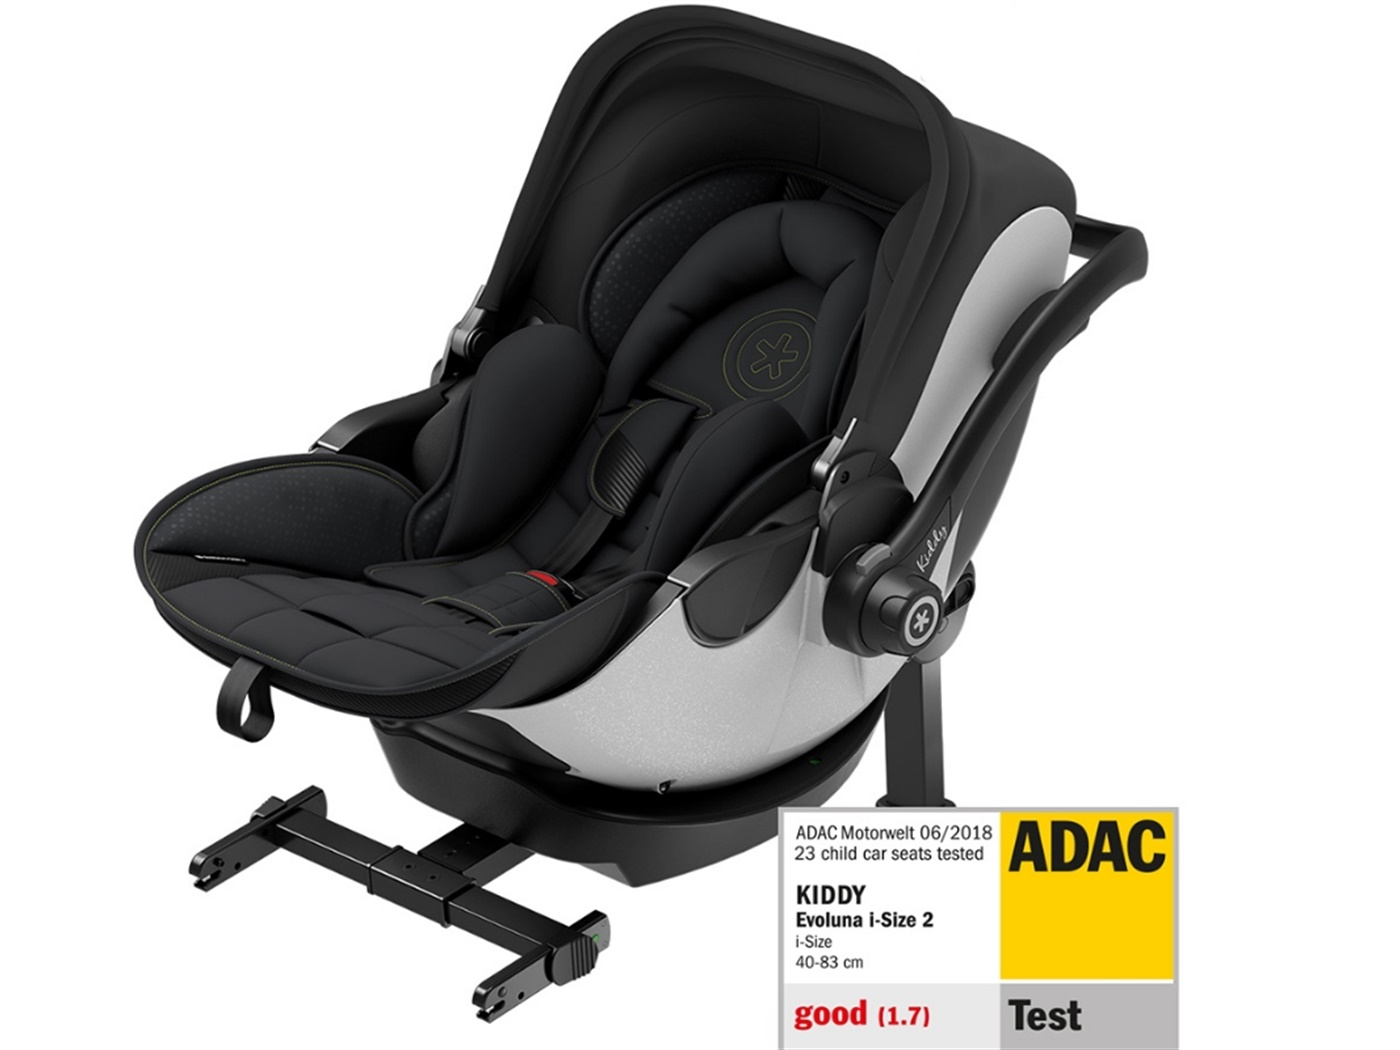 Kiddy   evoluna  i   size   2   car   seat      speed  black  gt